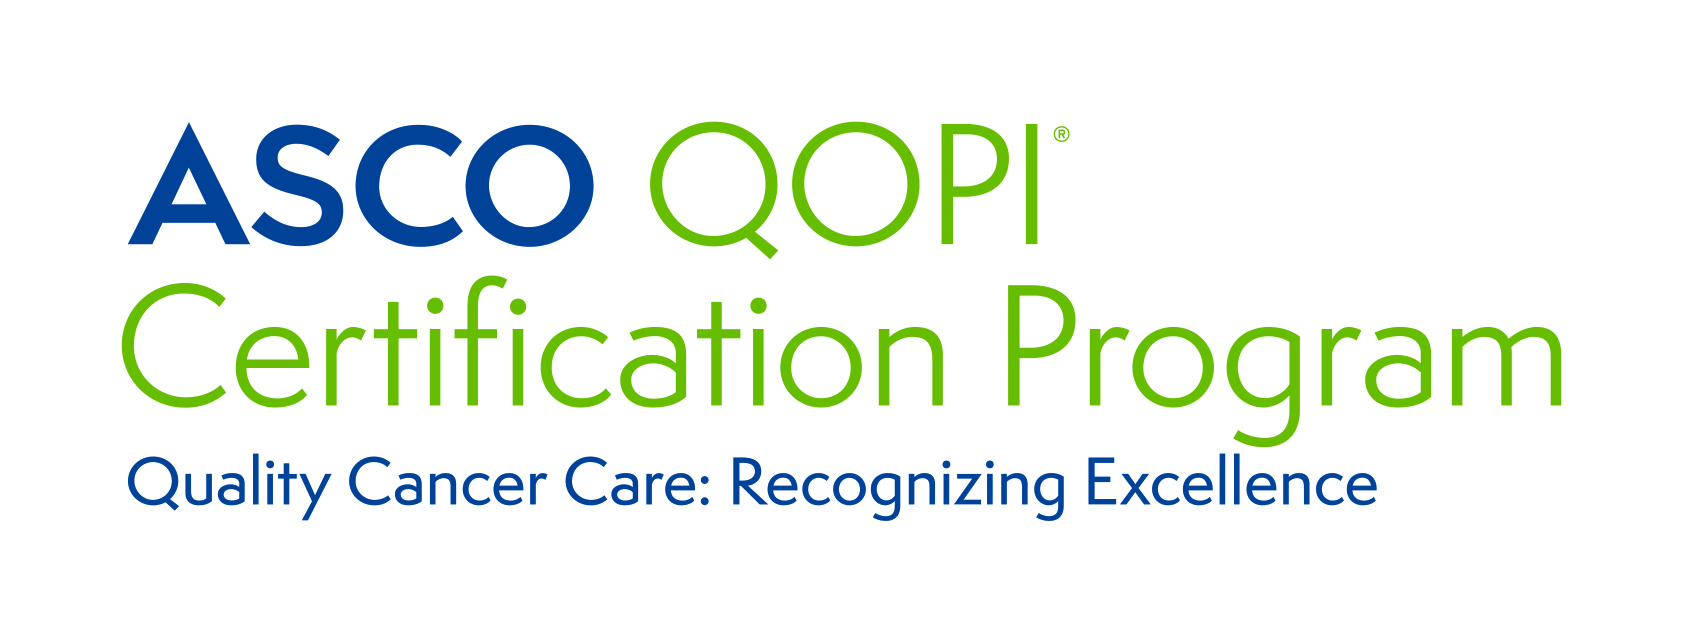 ASCO QOPI Certification Program; Quality Cancer Care: Recognizing Excellence